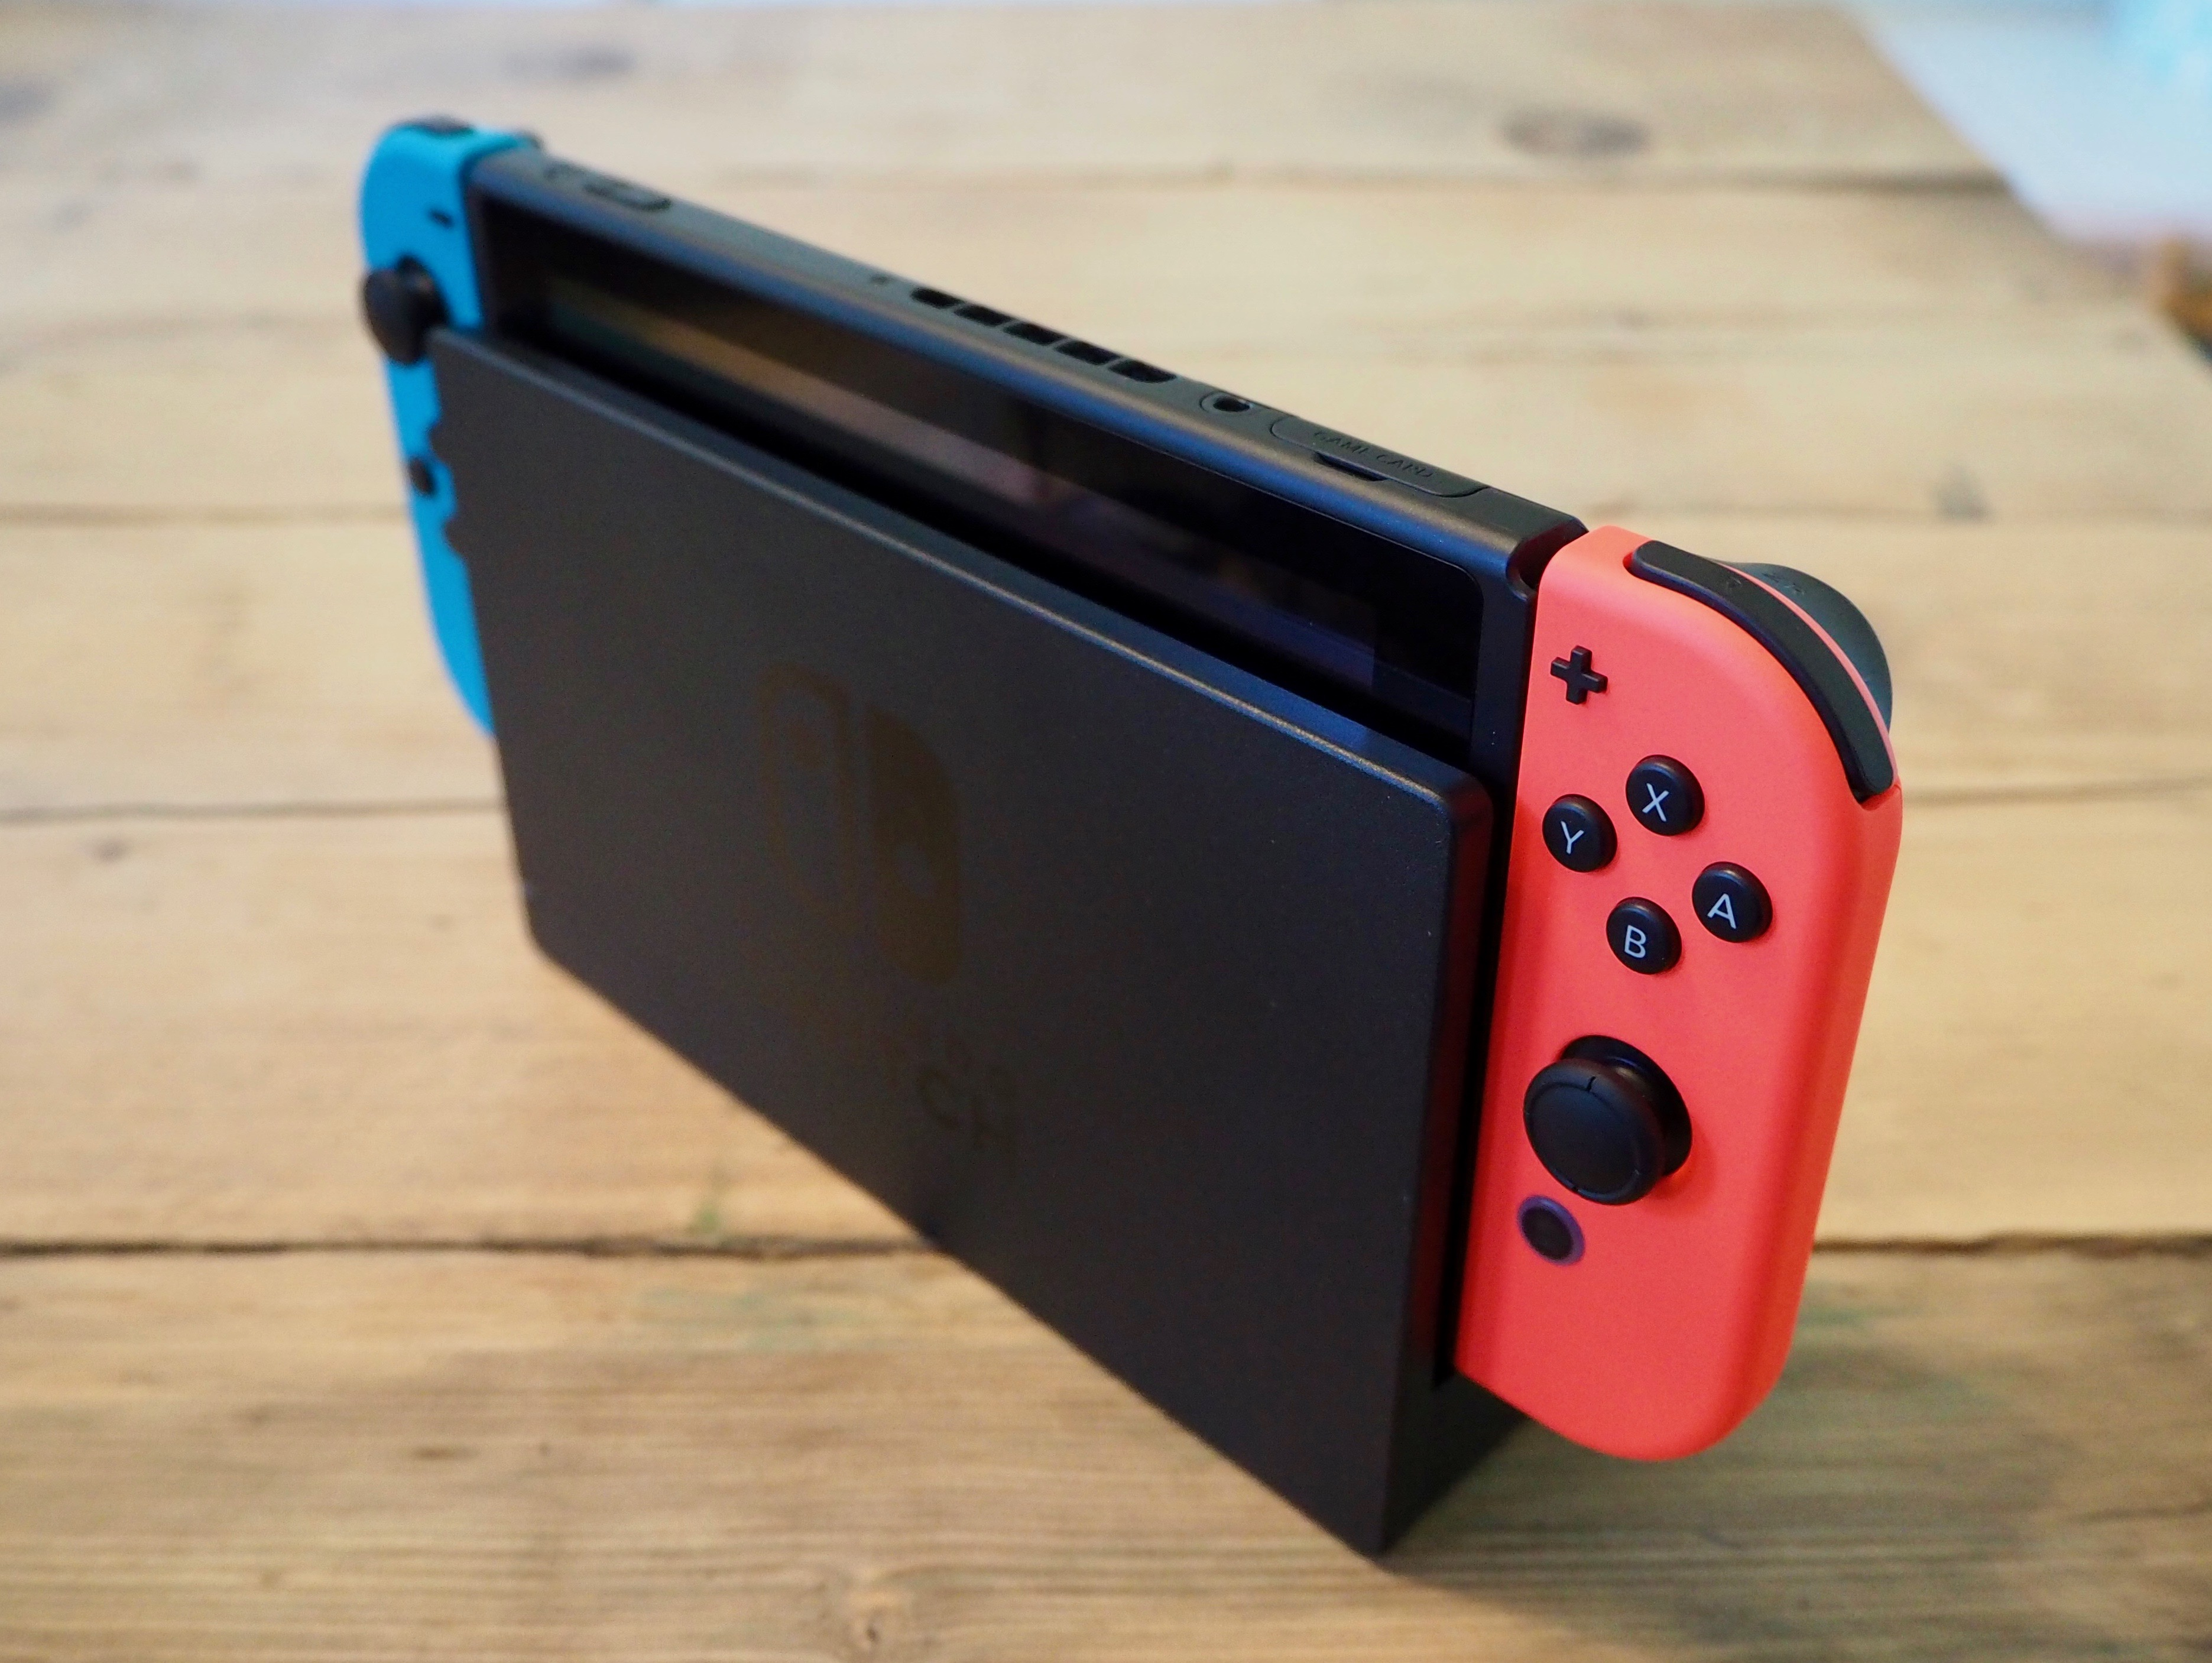 A Nintendo Switch console inserted into the TV dock accessory